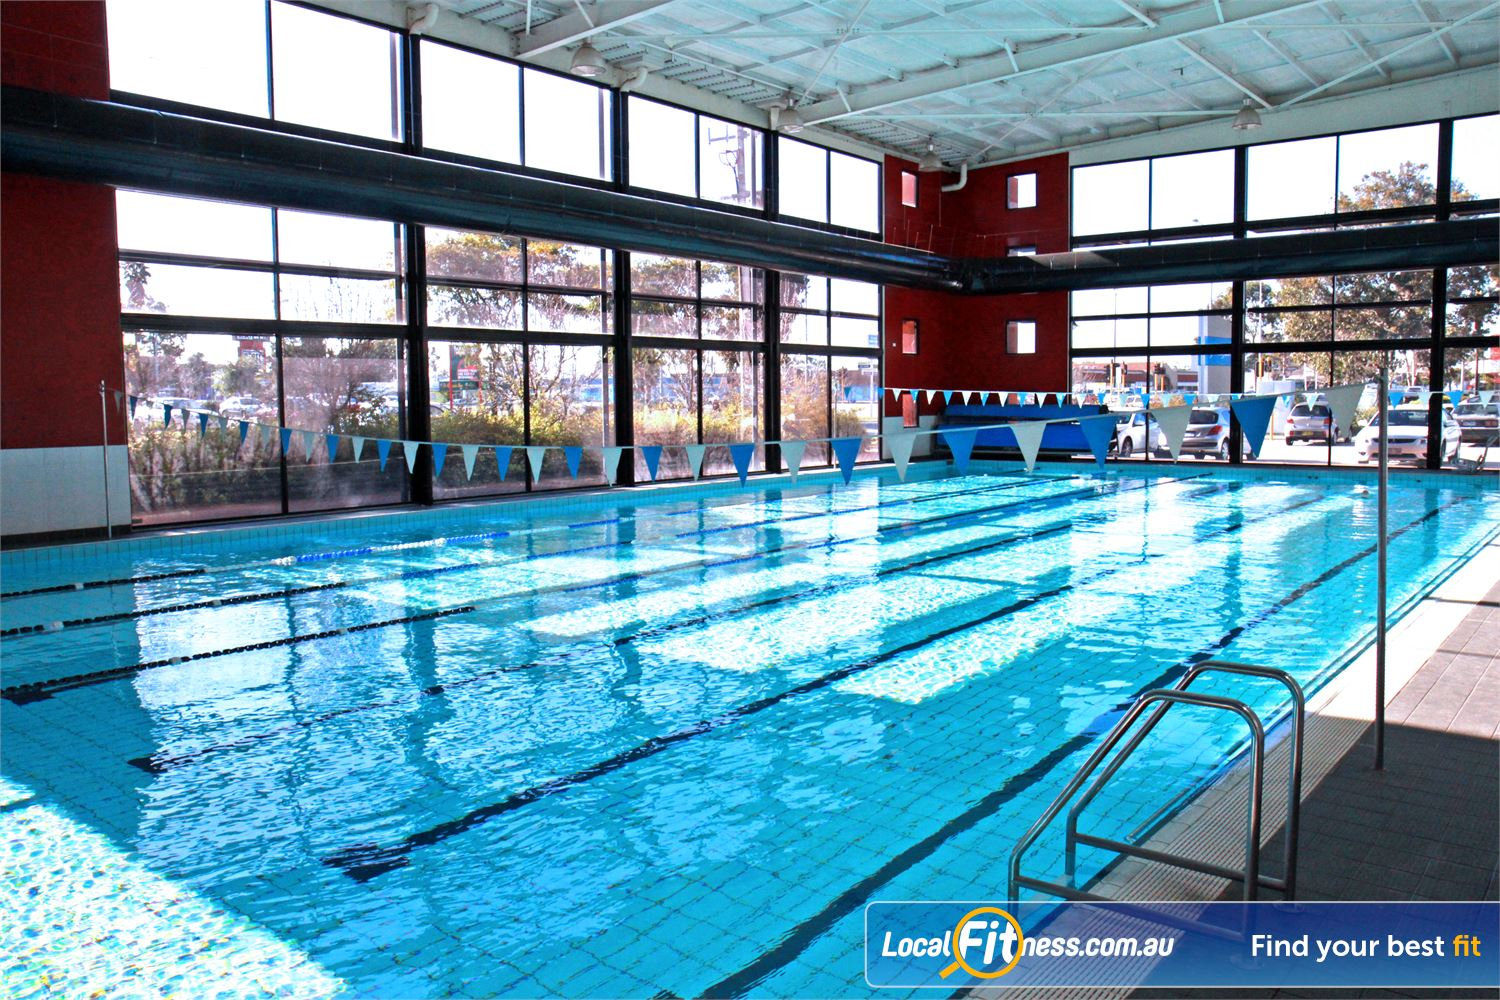 Goodlife Health Clubs Cannington The exclusive Cannington indoor swimming pool.